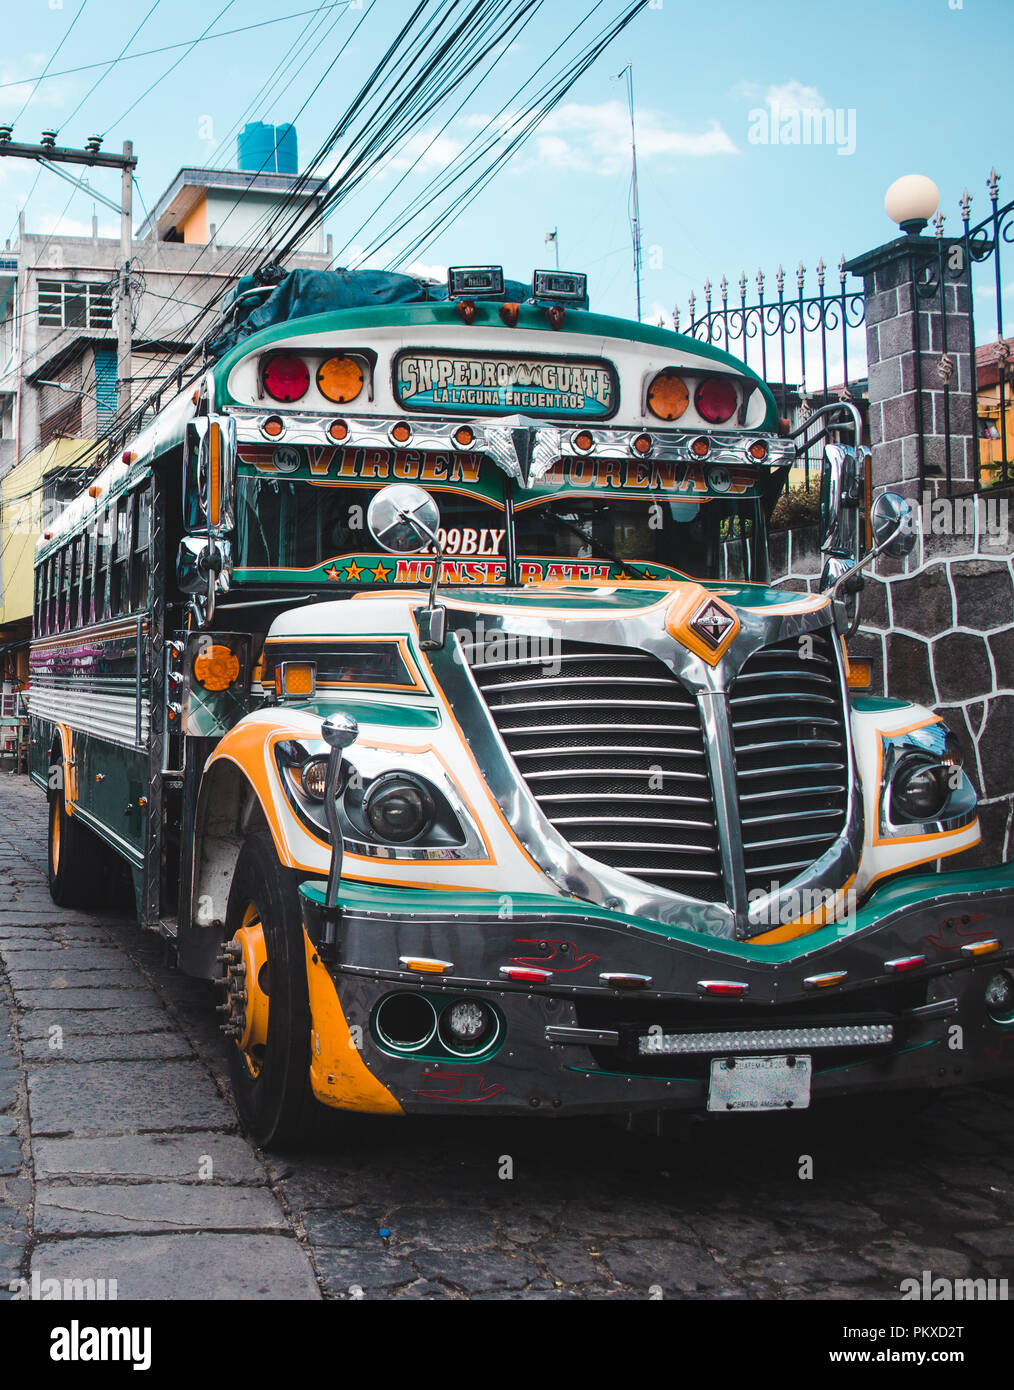 A colorful public bus - also known as 'chicken bus' - parked in San Pedro Guatemala. An example of a repurposed and repainted American school bus - Stock Image